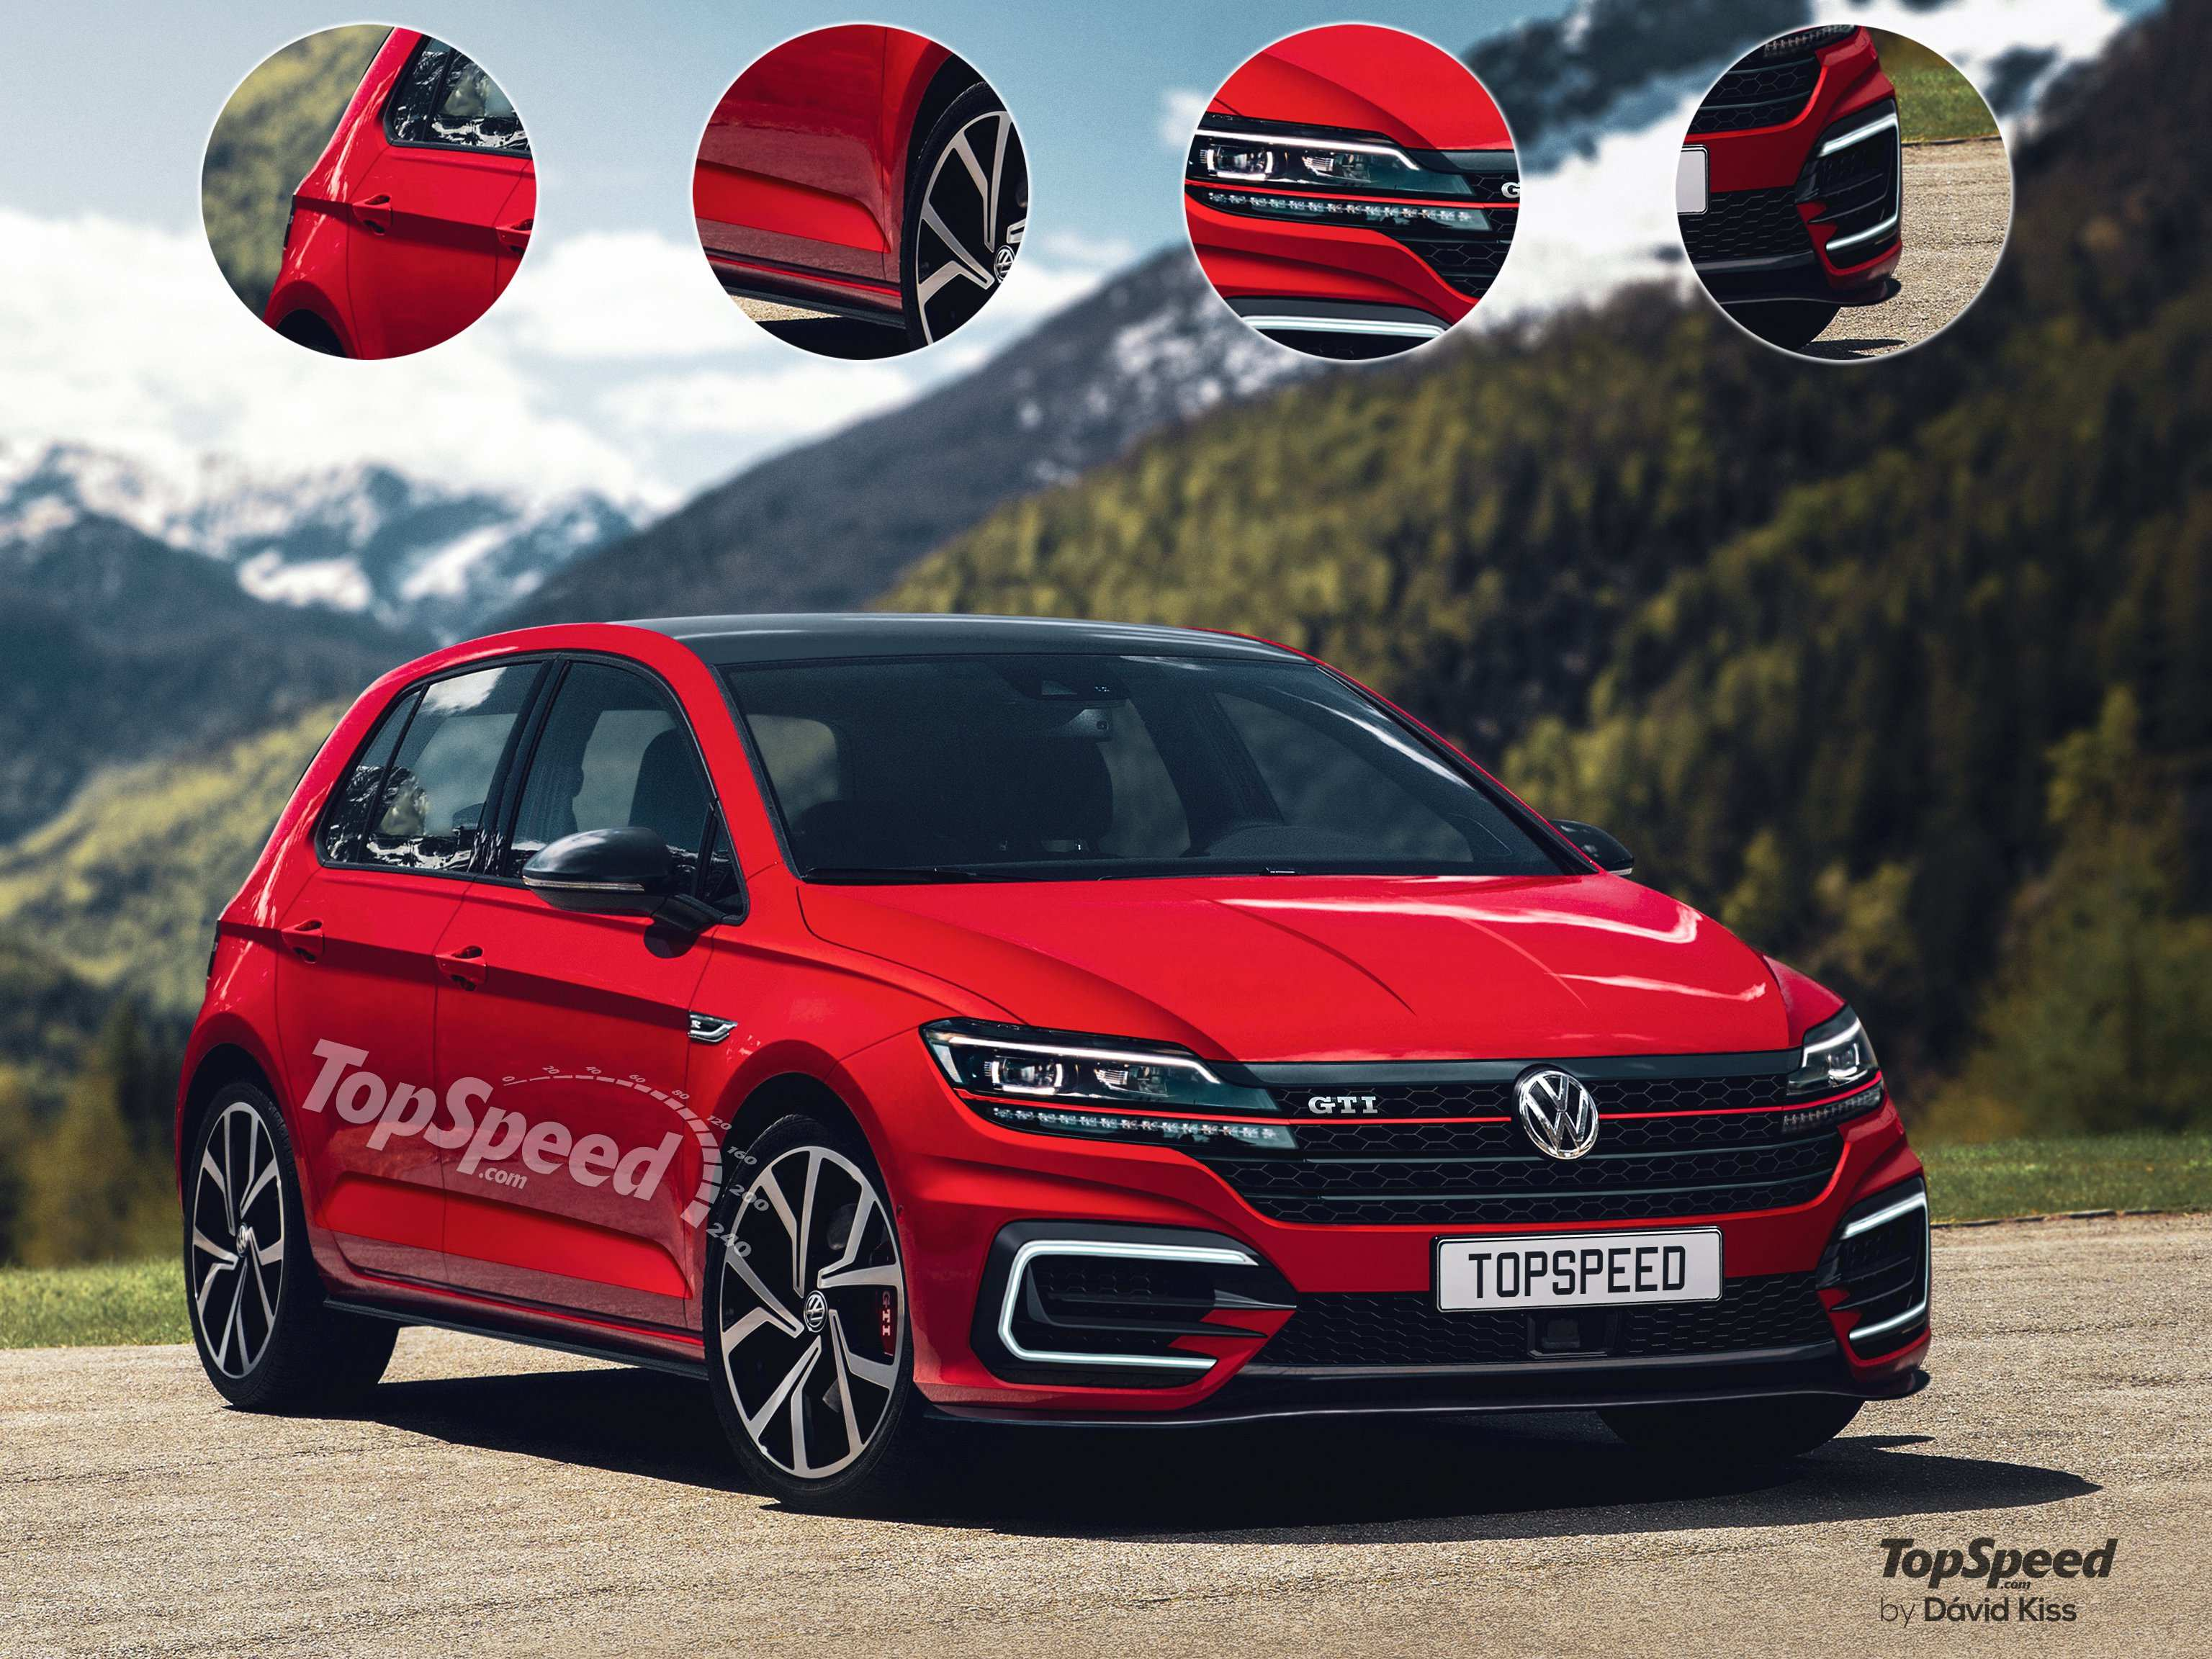 60 New Volkswagen Golf Hybrid 2020 Price And Release Date